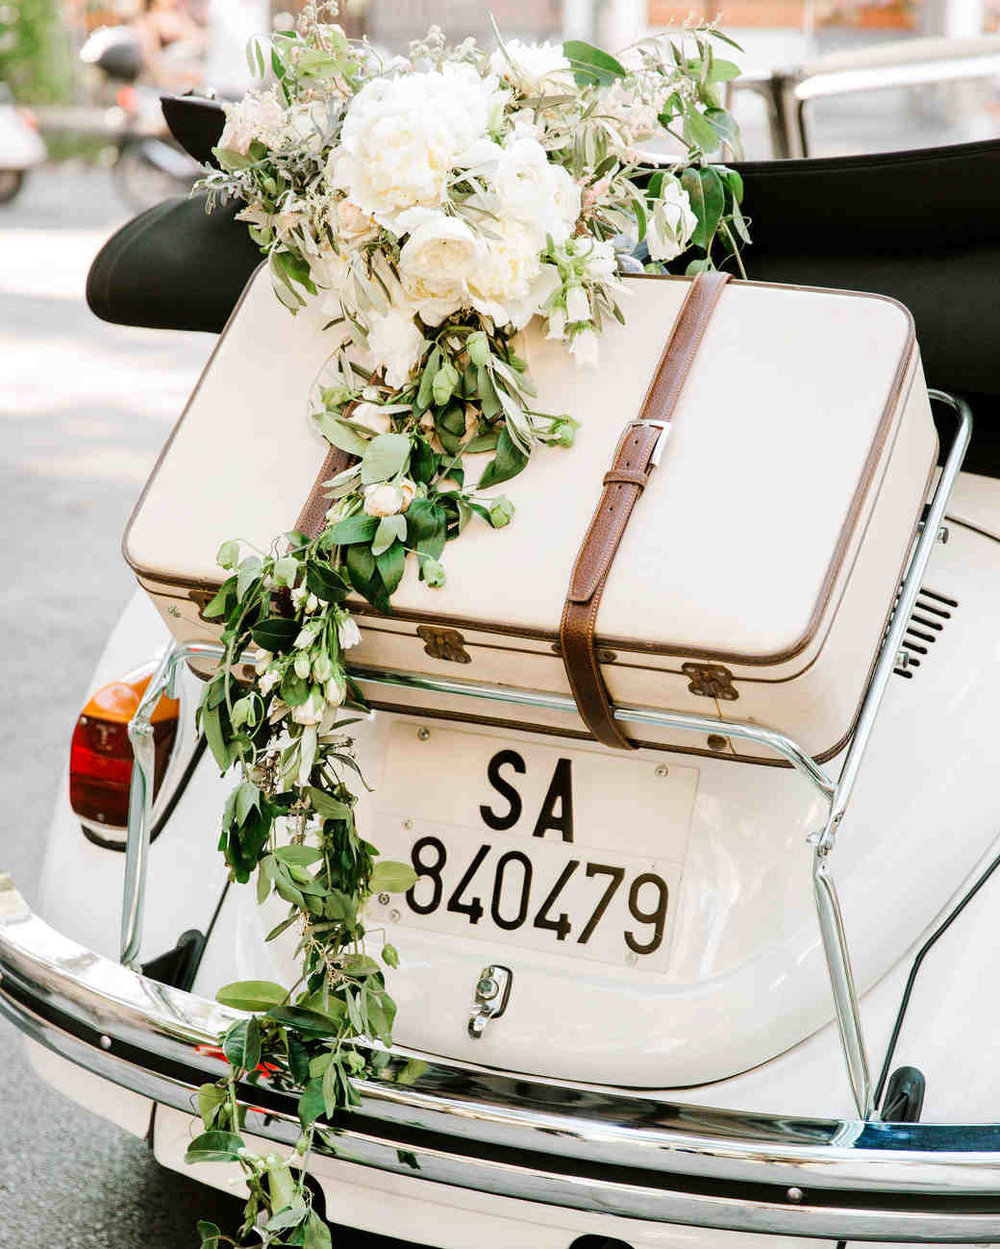 lisa-greg-italy-wedding-car-103312973_vert.jpg